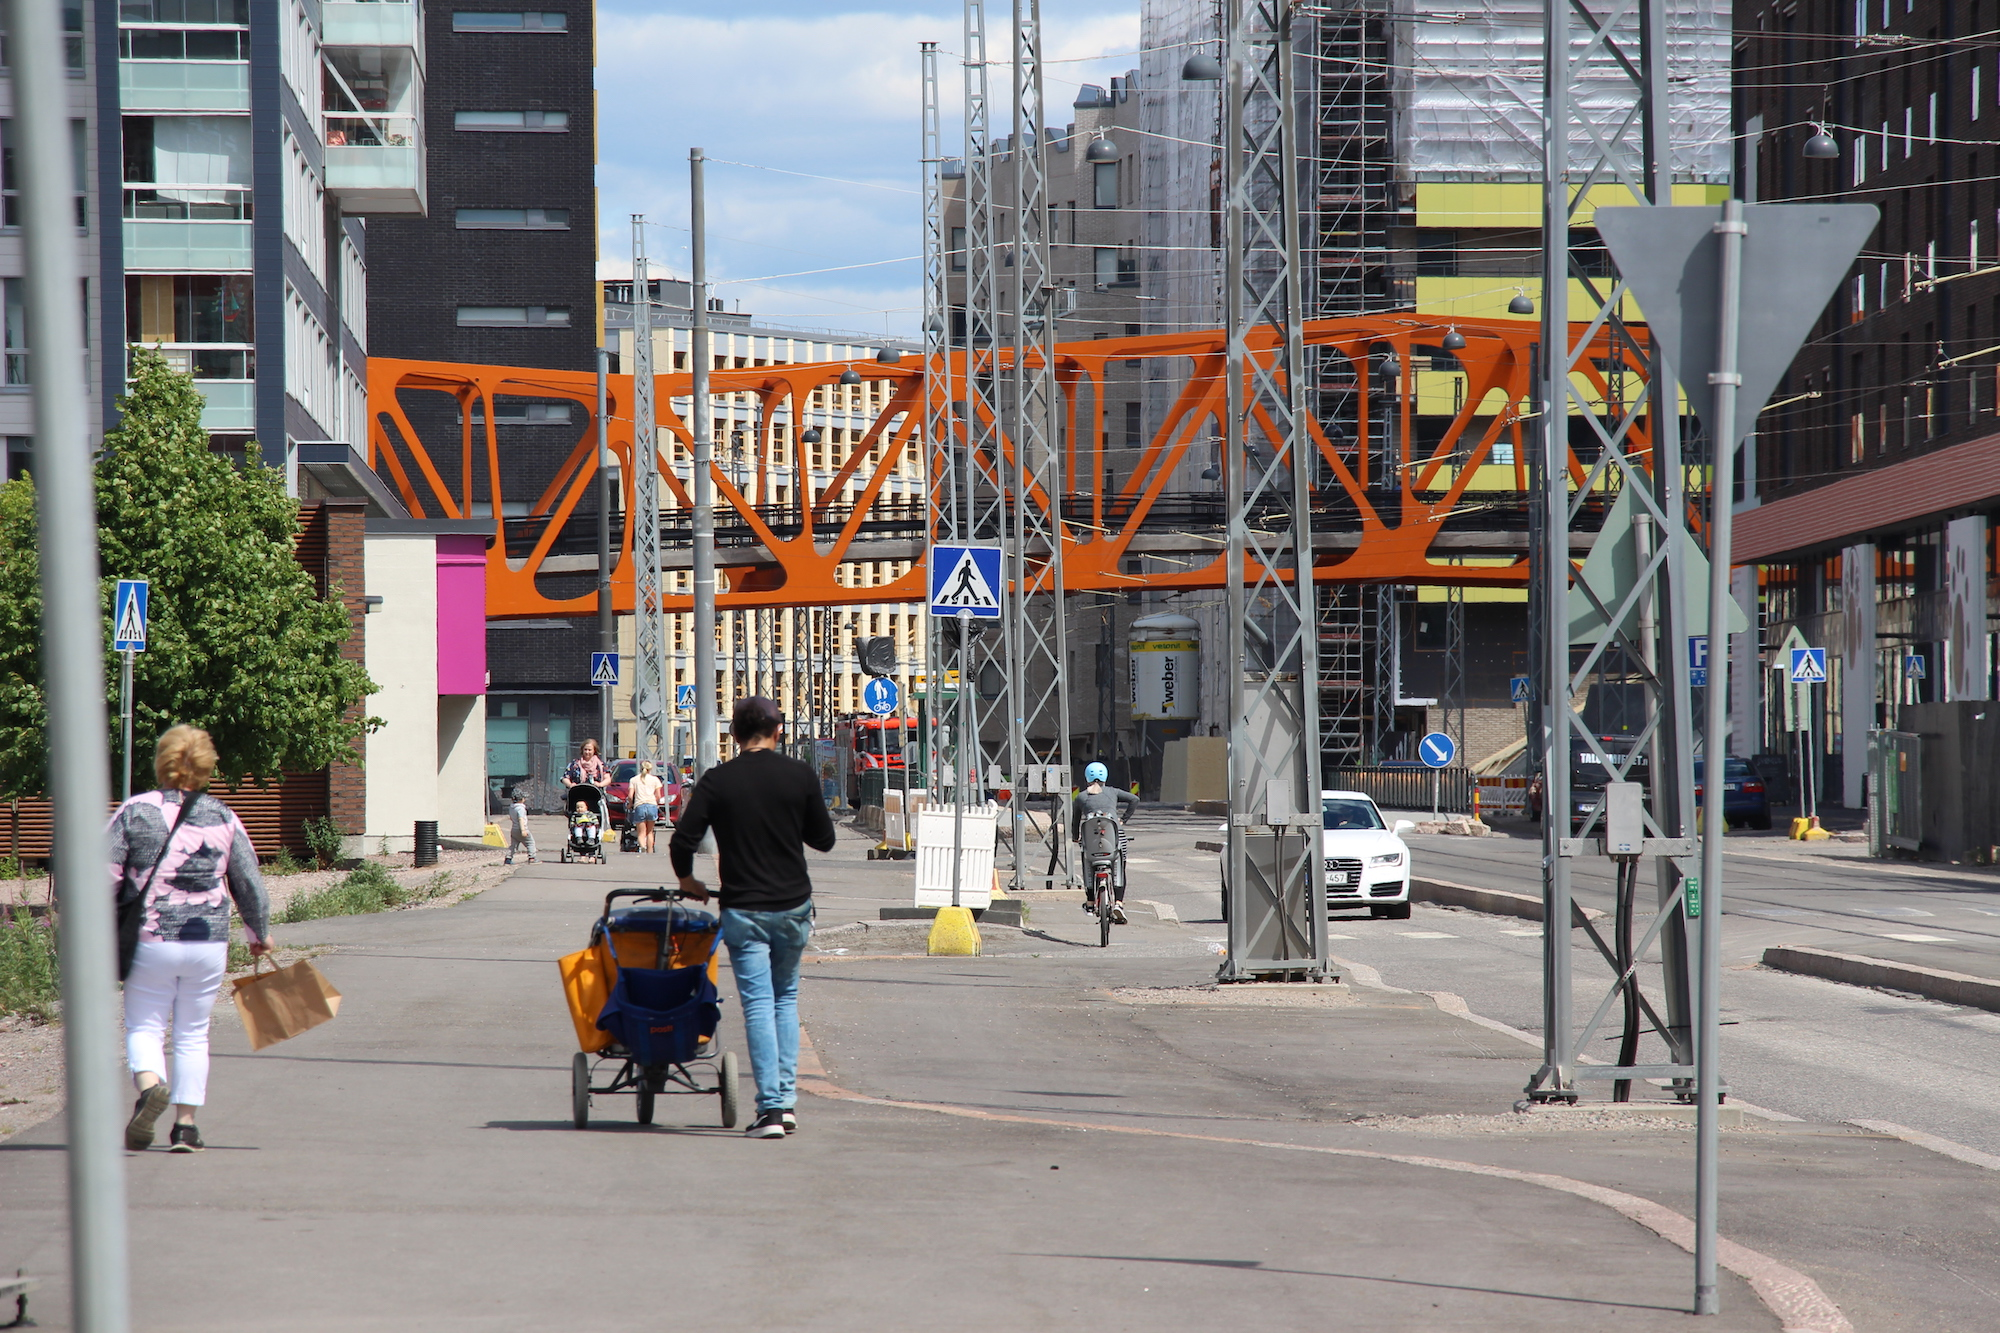 Finland's most urban smart mobility test area established in Helsinki's Jätkäsaari